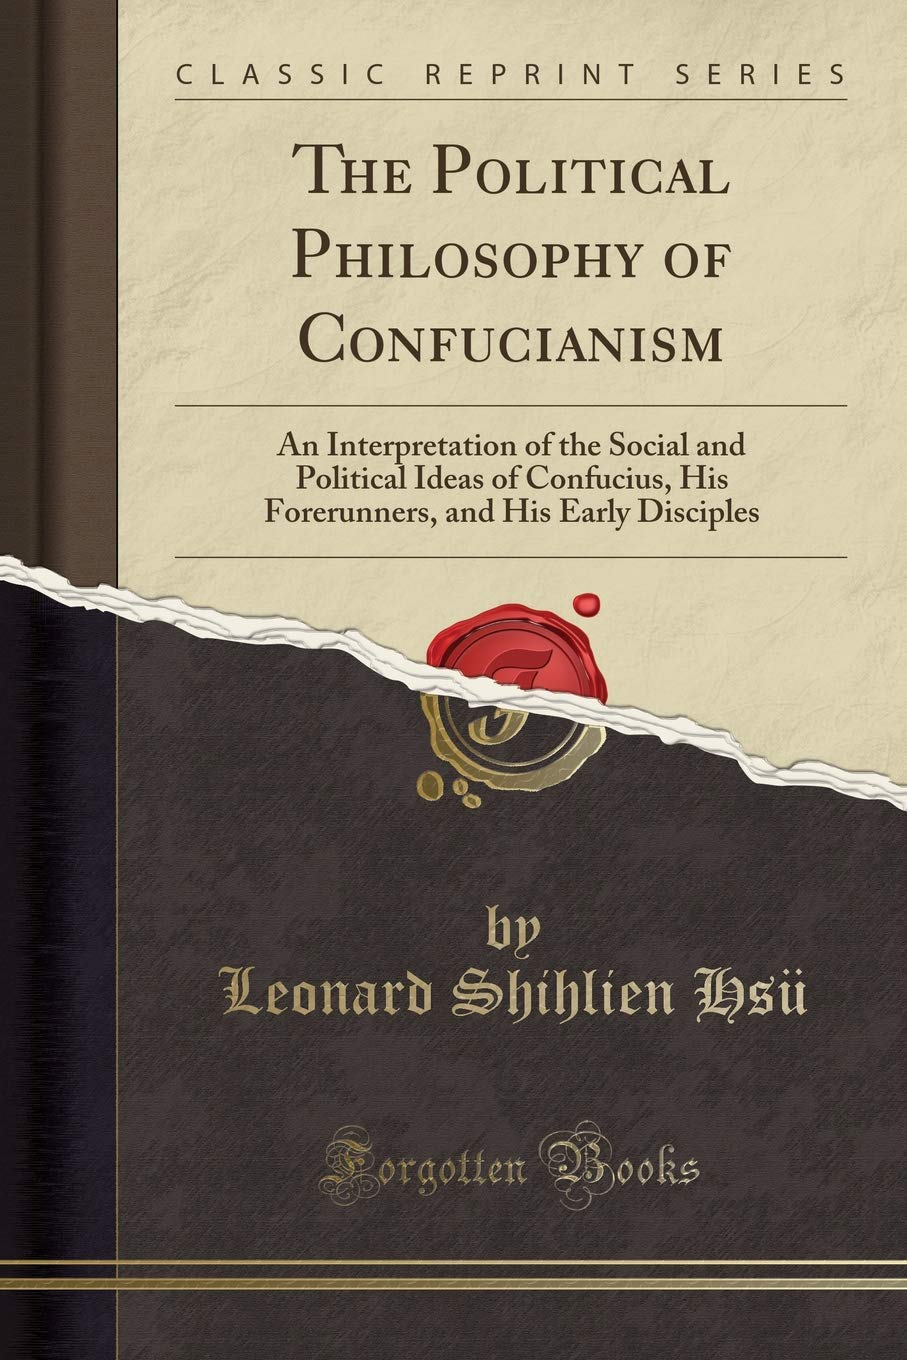 The Political Philosophy of Confucianism: An Interpretation of the Social and Political Ideas of Confucius, His Forerunners, and His Early Disciples (Classic Reprint) PDF